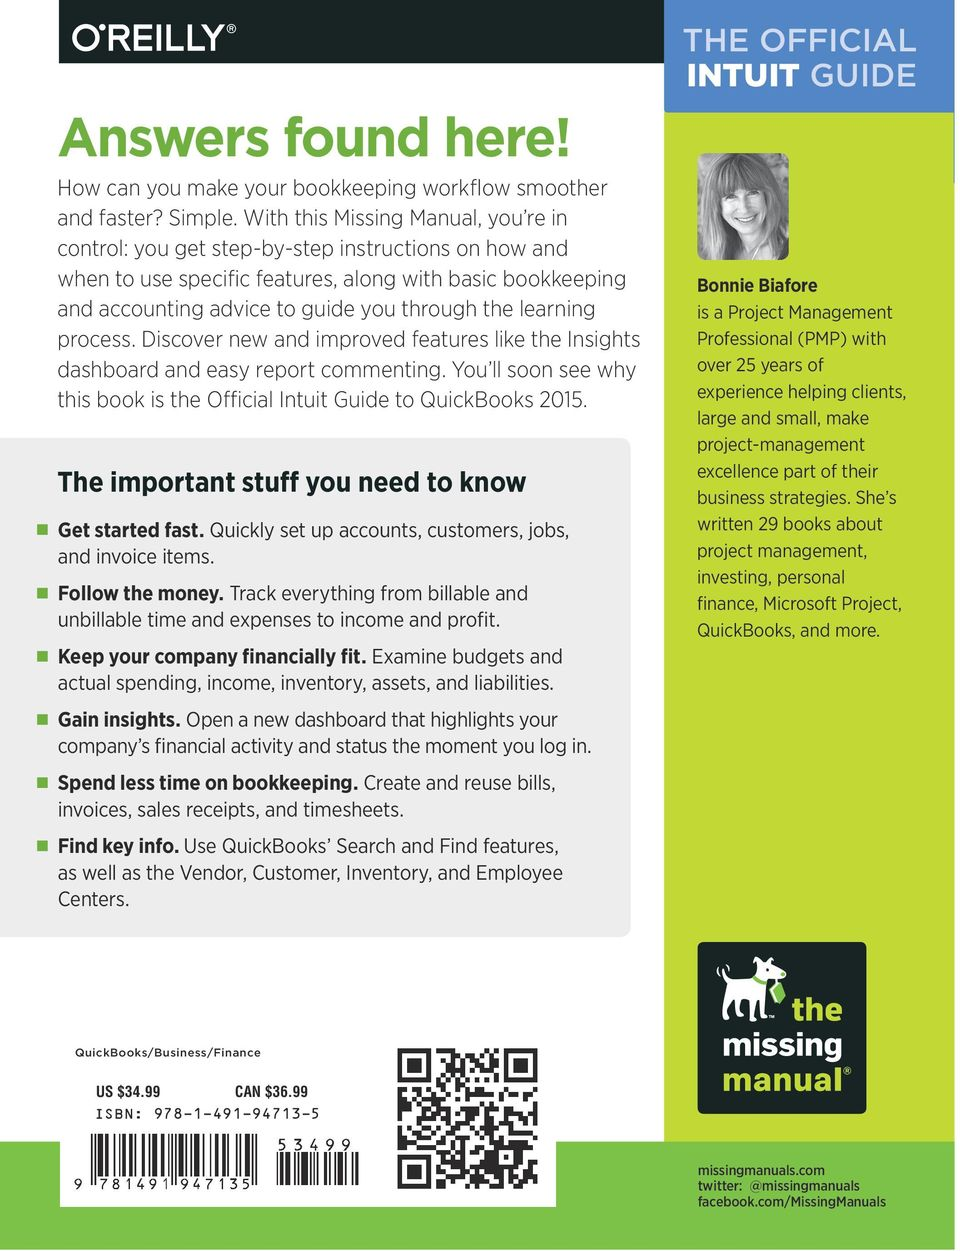 THE OFFICIAL INTUIT GUIDE  QuickBooks Bonnie Biafore  Covers